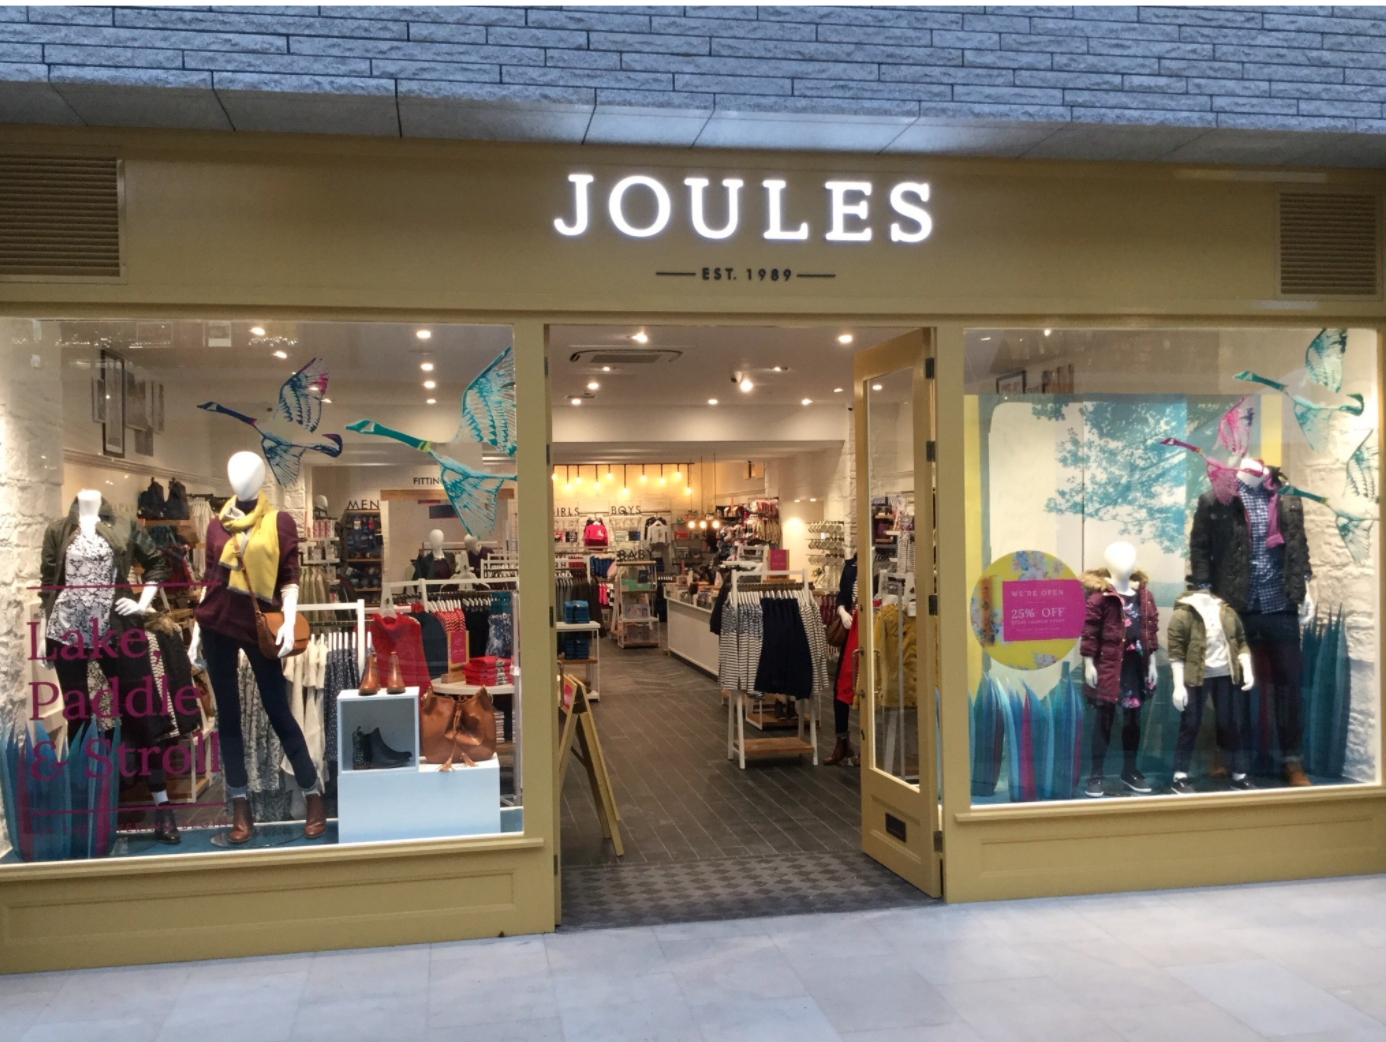 Above: Vicki pays tribute to retailer Joules for its broader business strategy.